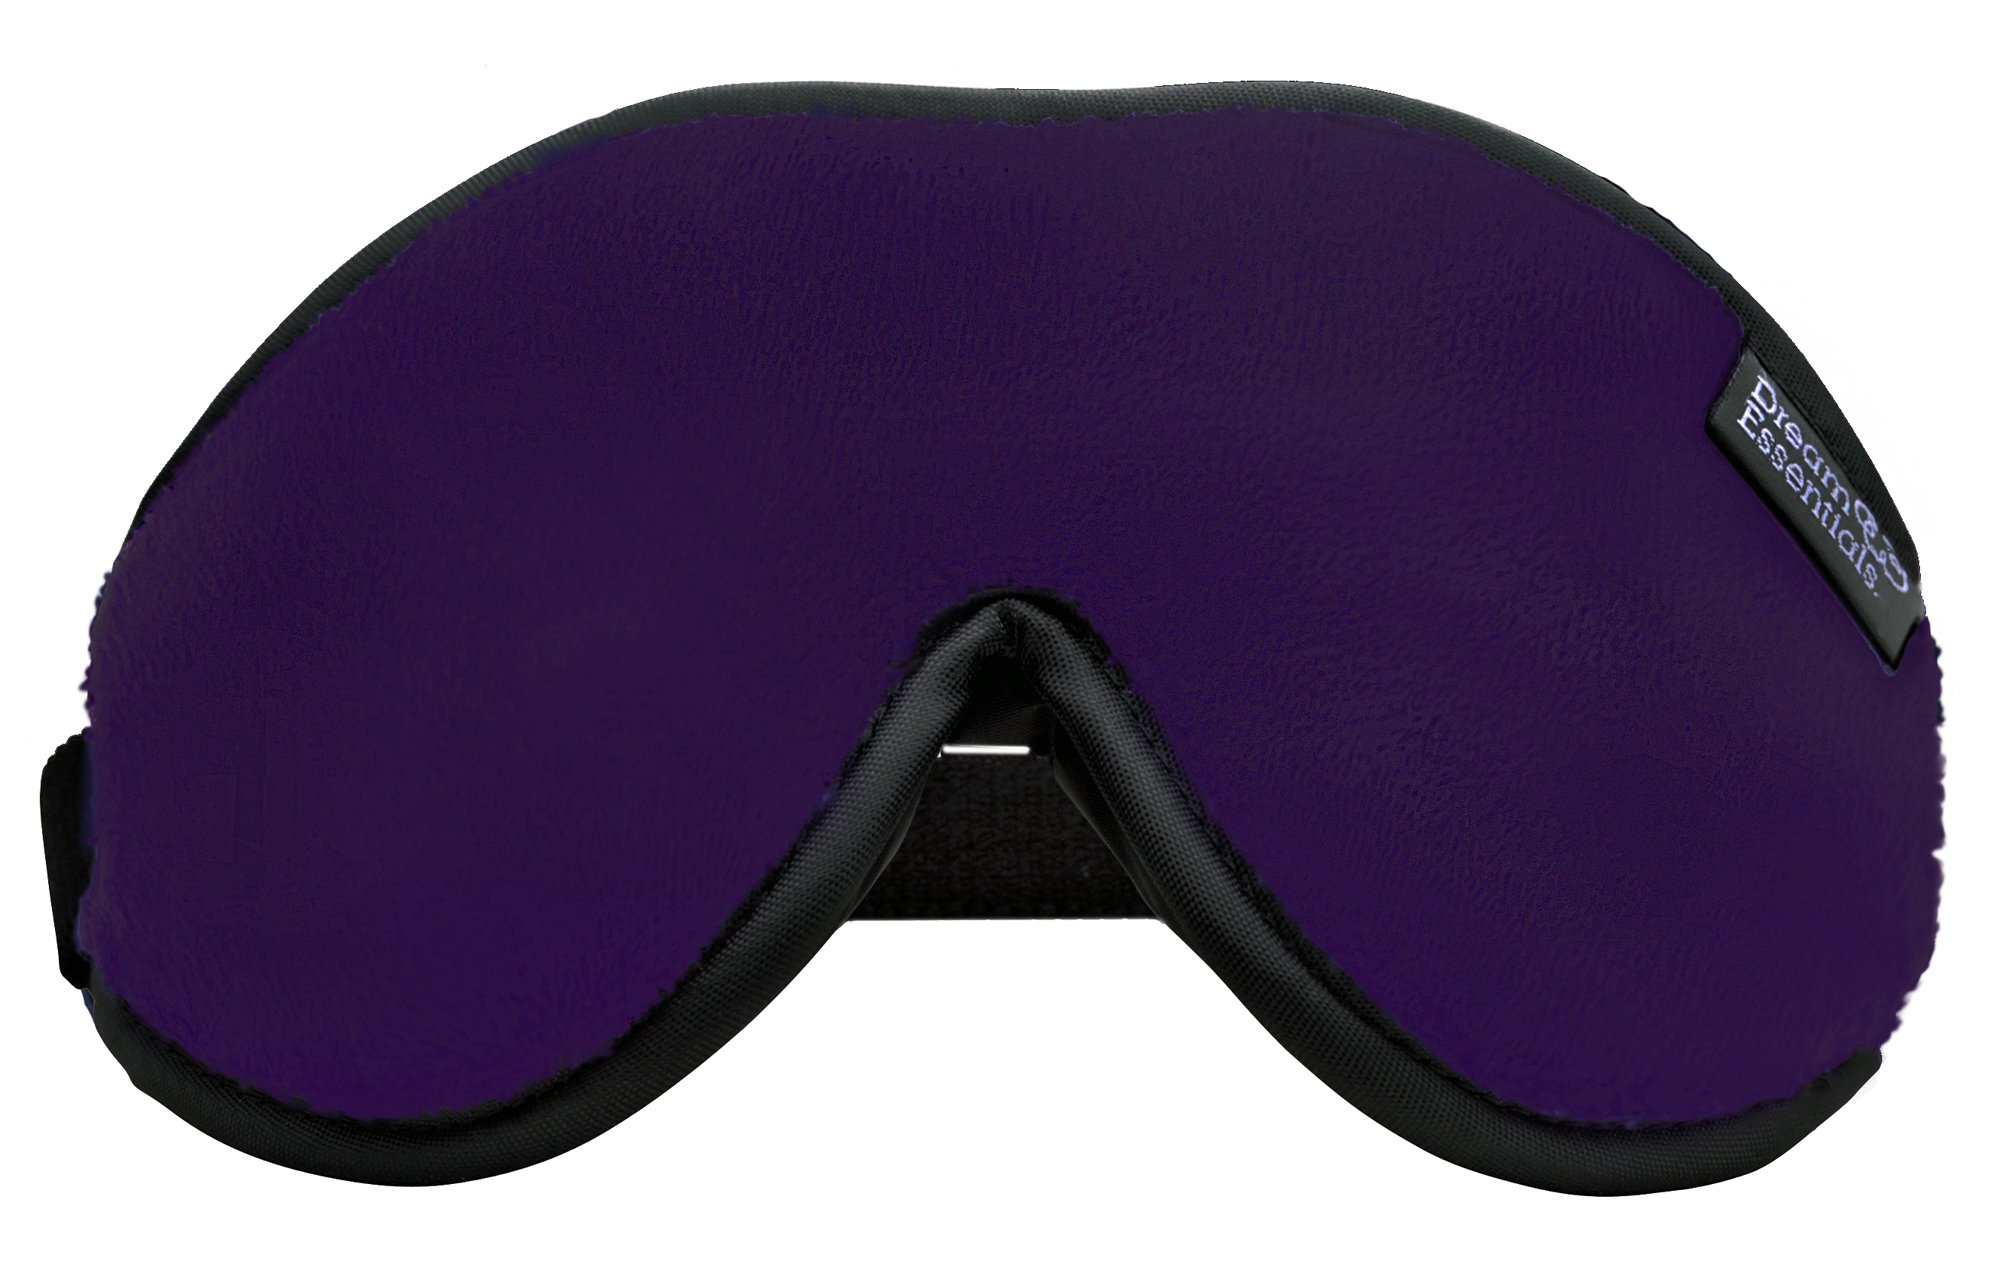 0cab39be398 Amazon.com  Dream Essentials Escape Sleep Mask with Earplugs and ...